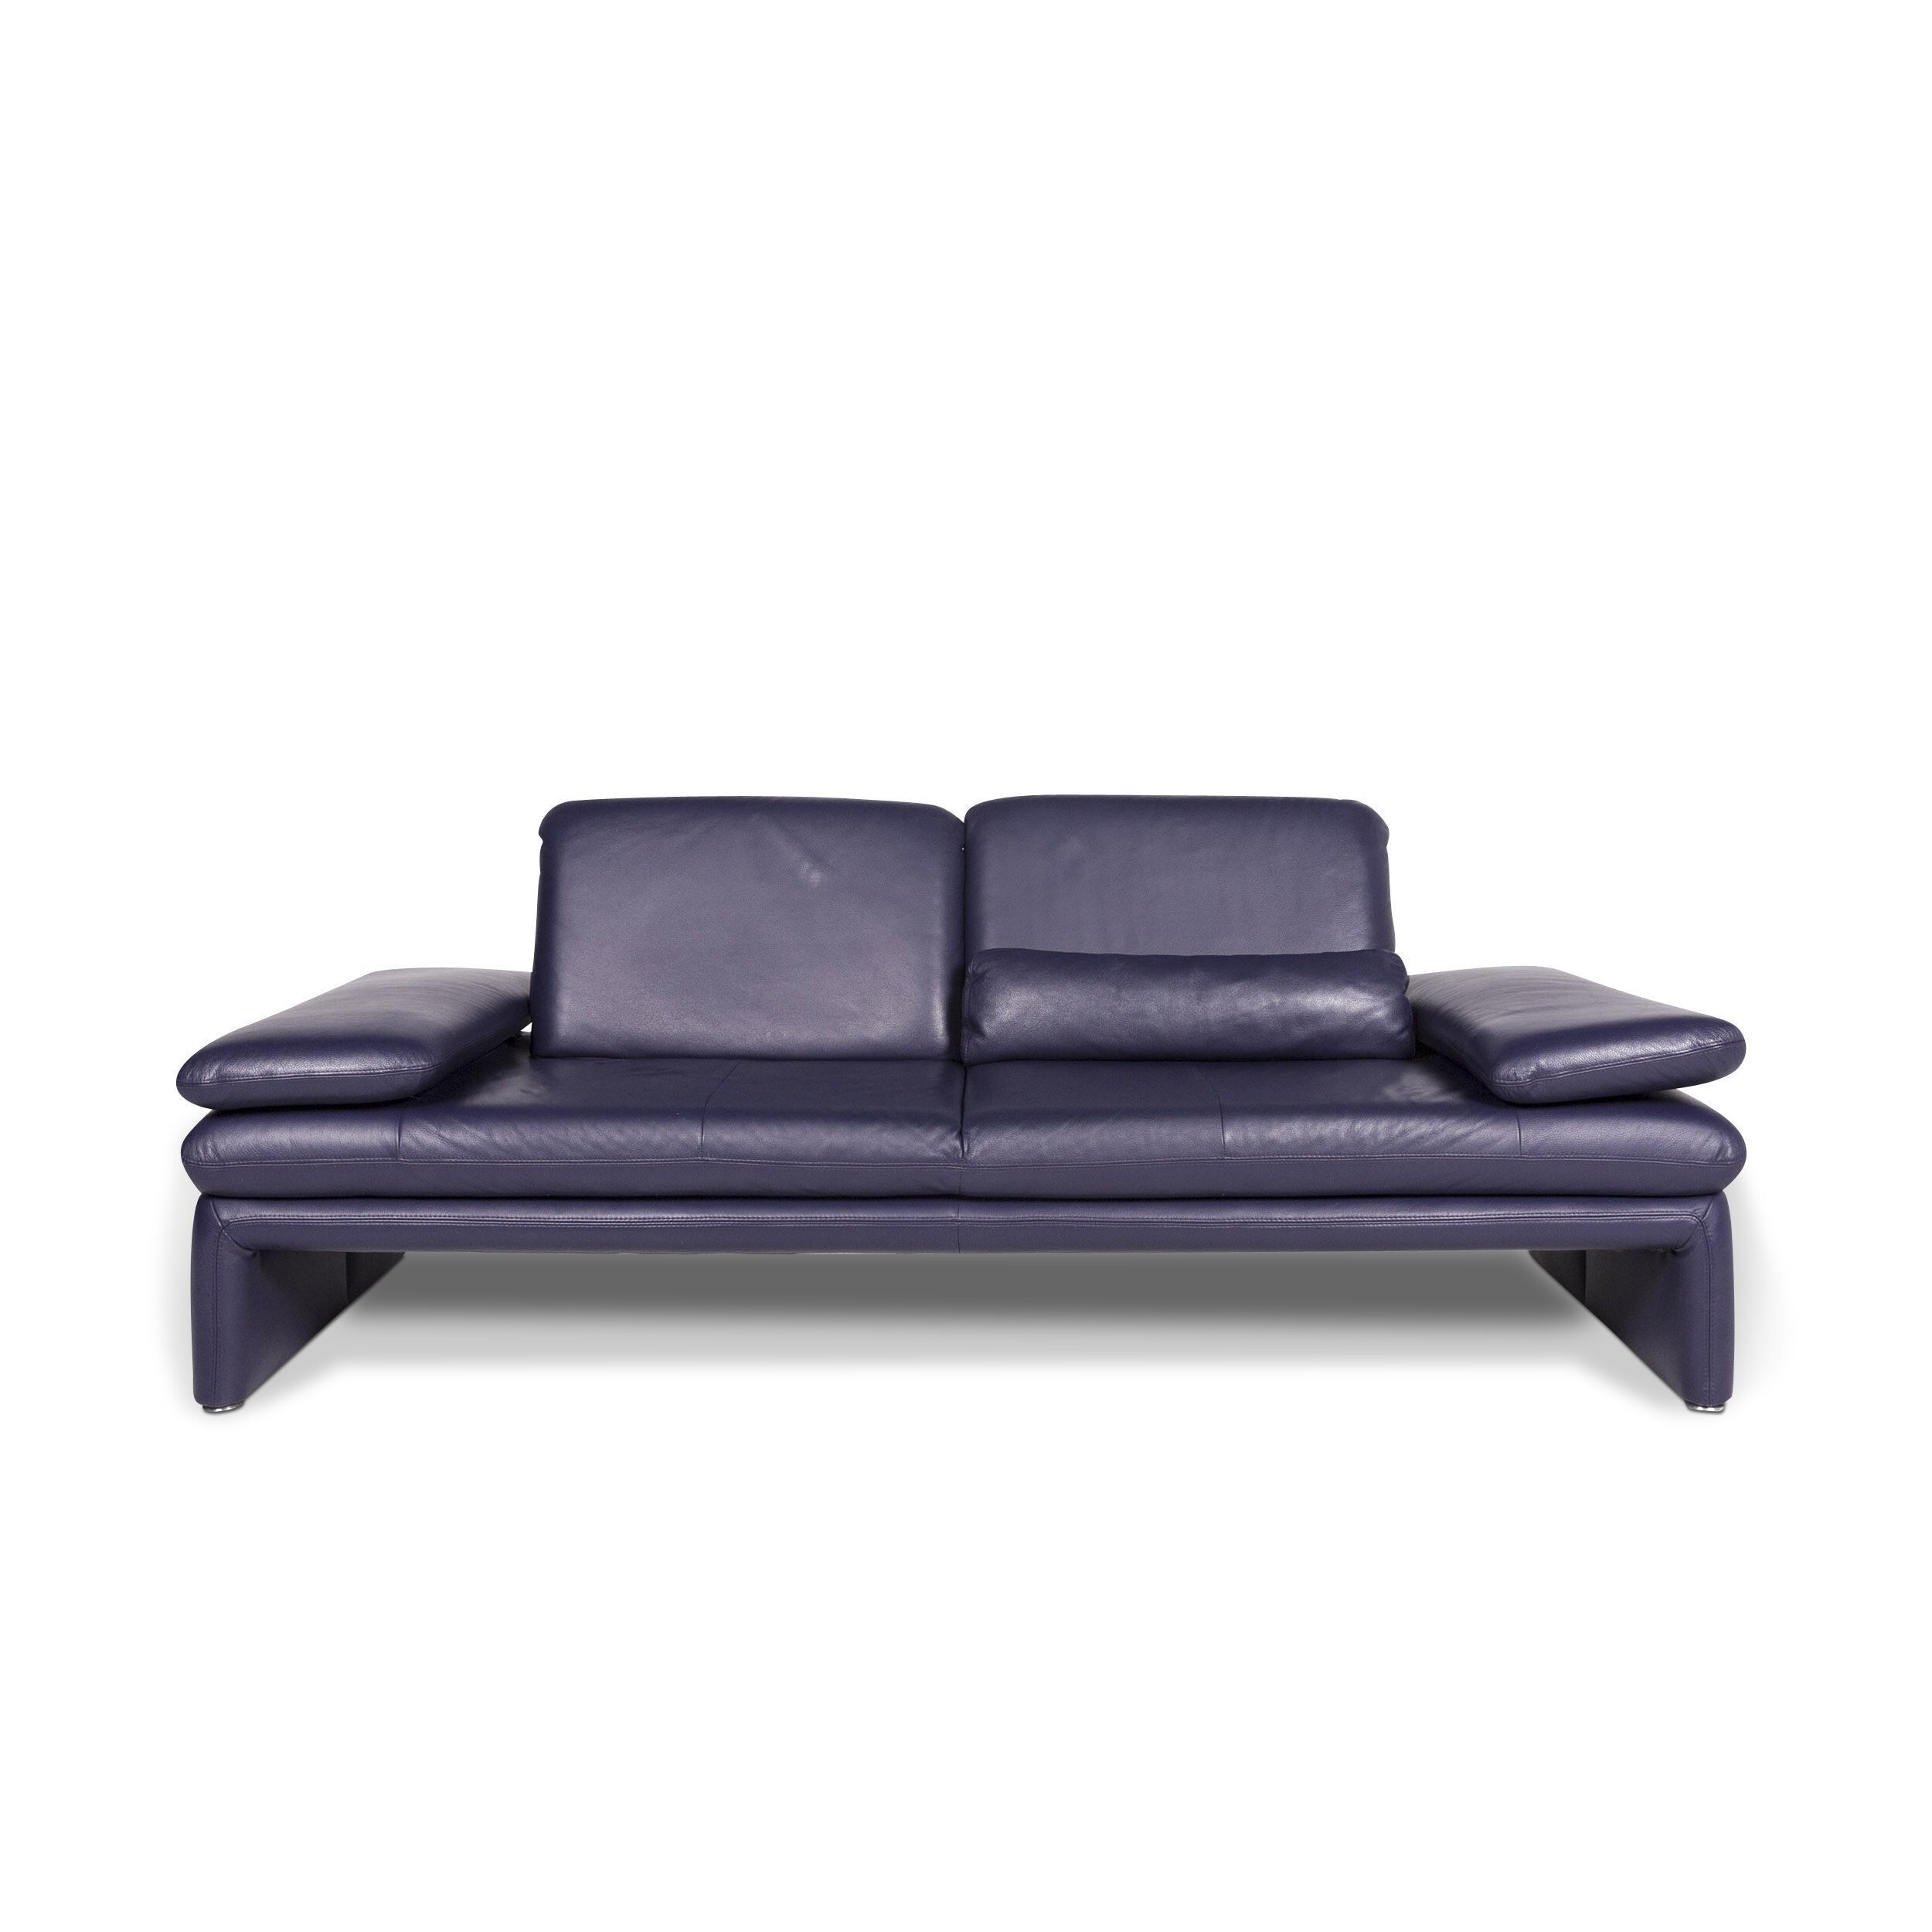 Astonishing Willi Schillig Designer Leather Sofa Purple Two Seater Couch 9590 Pdpeps Interior Chair Design Pdpepsorg